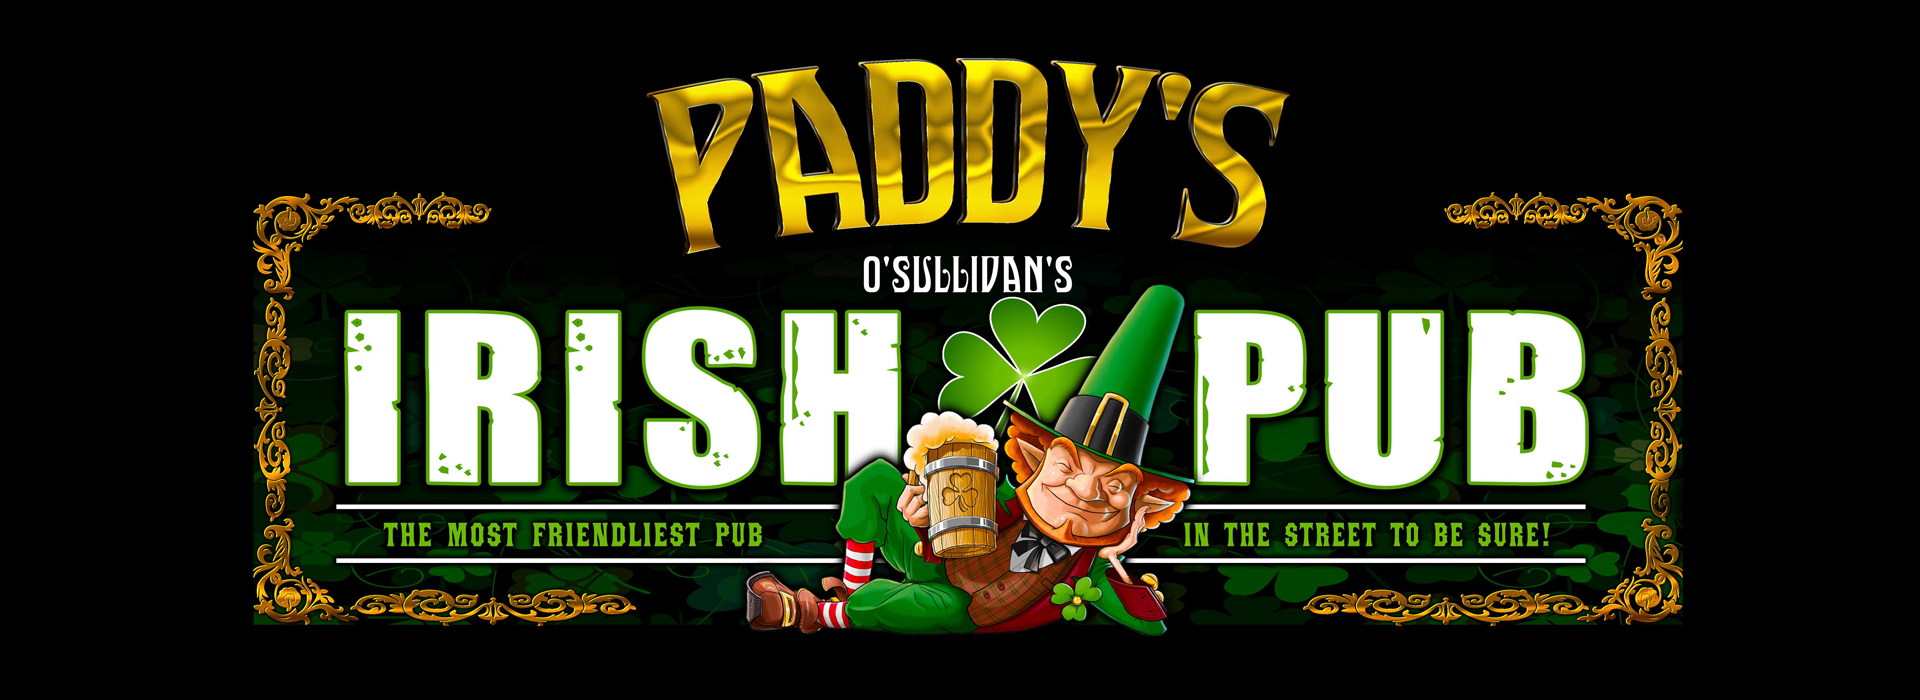 Paddy's Irish Pub with leprechaun